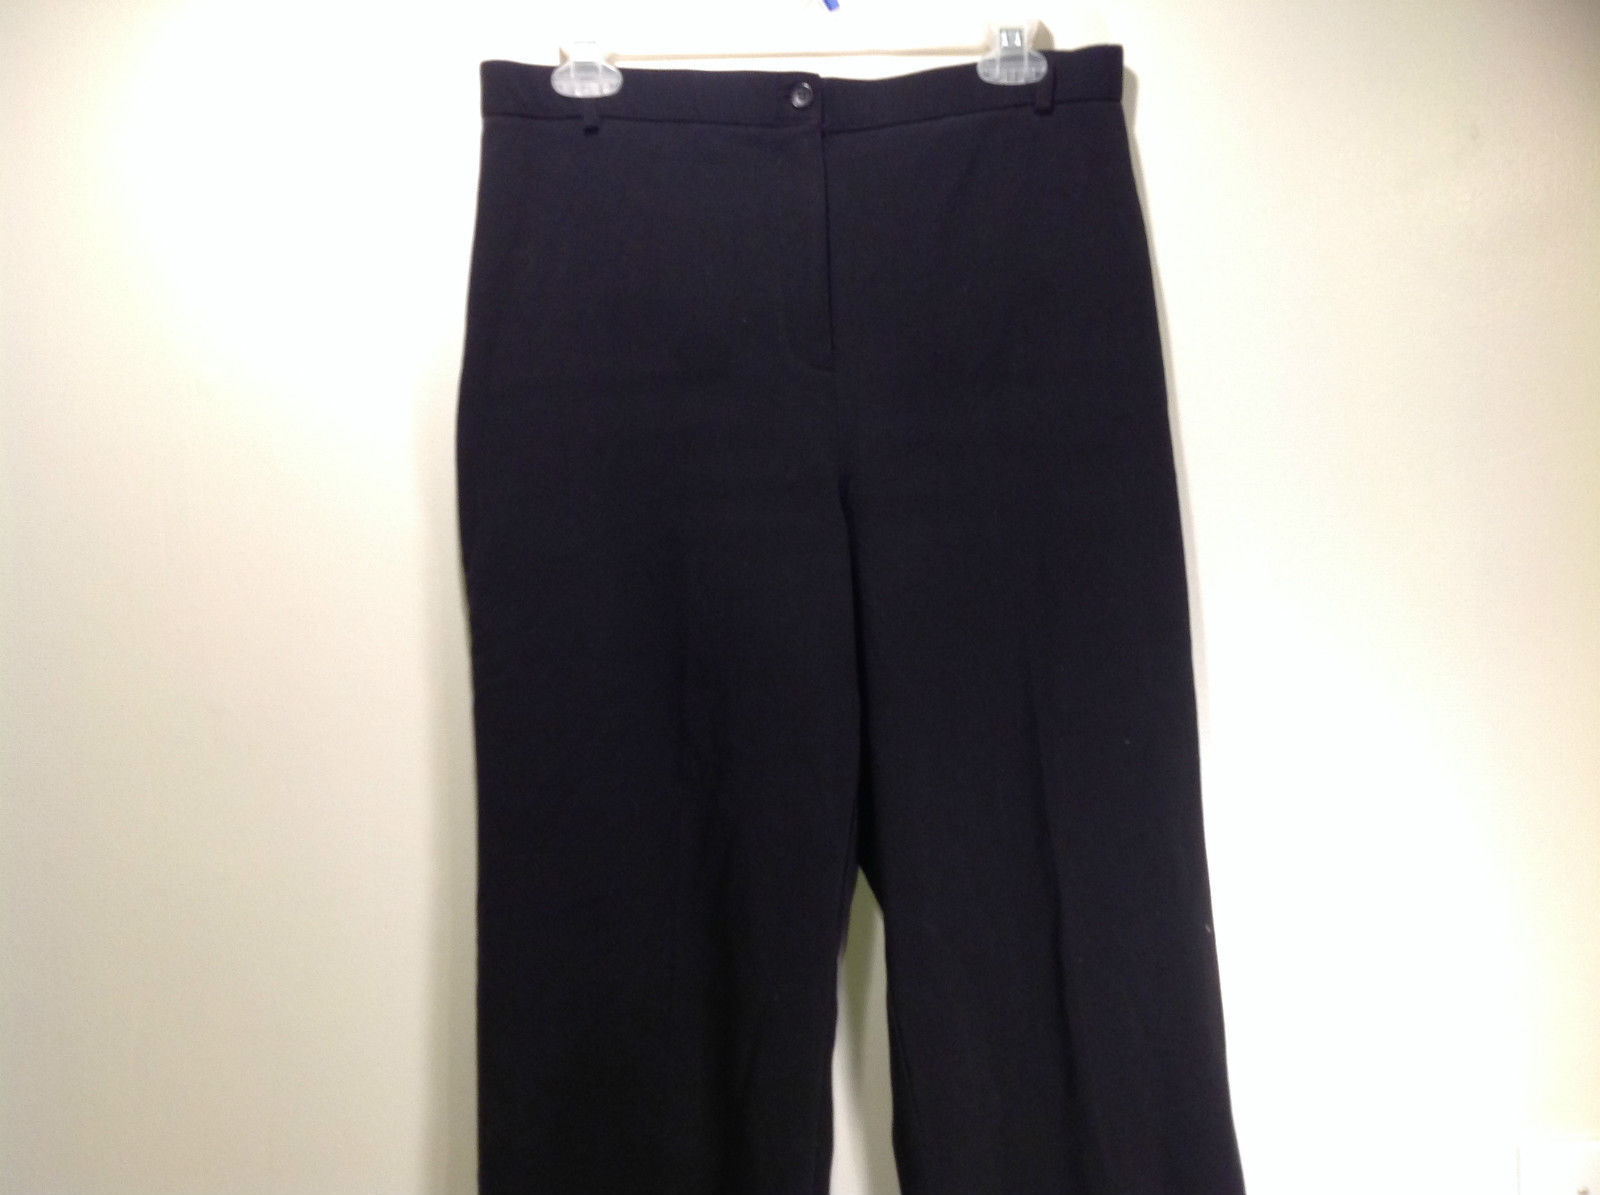 Briggs New York Size 12 Black Dress Pants Button and Zipper Front Closure